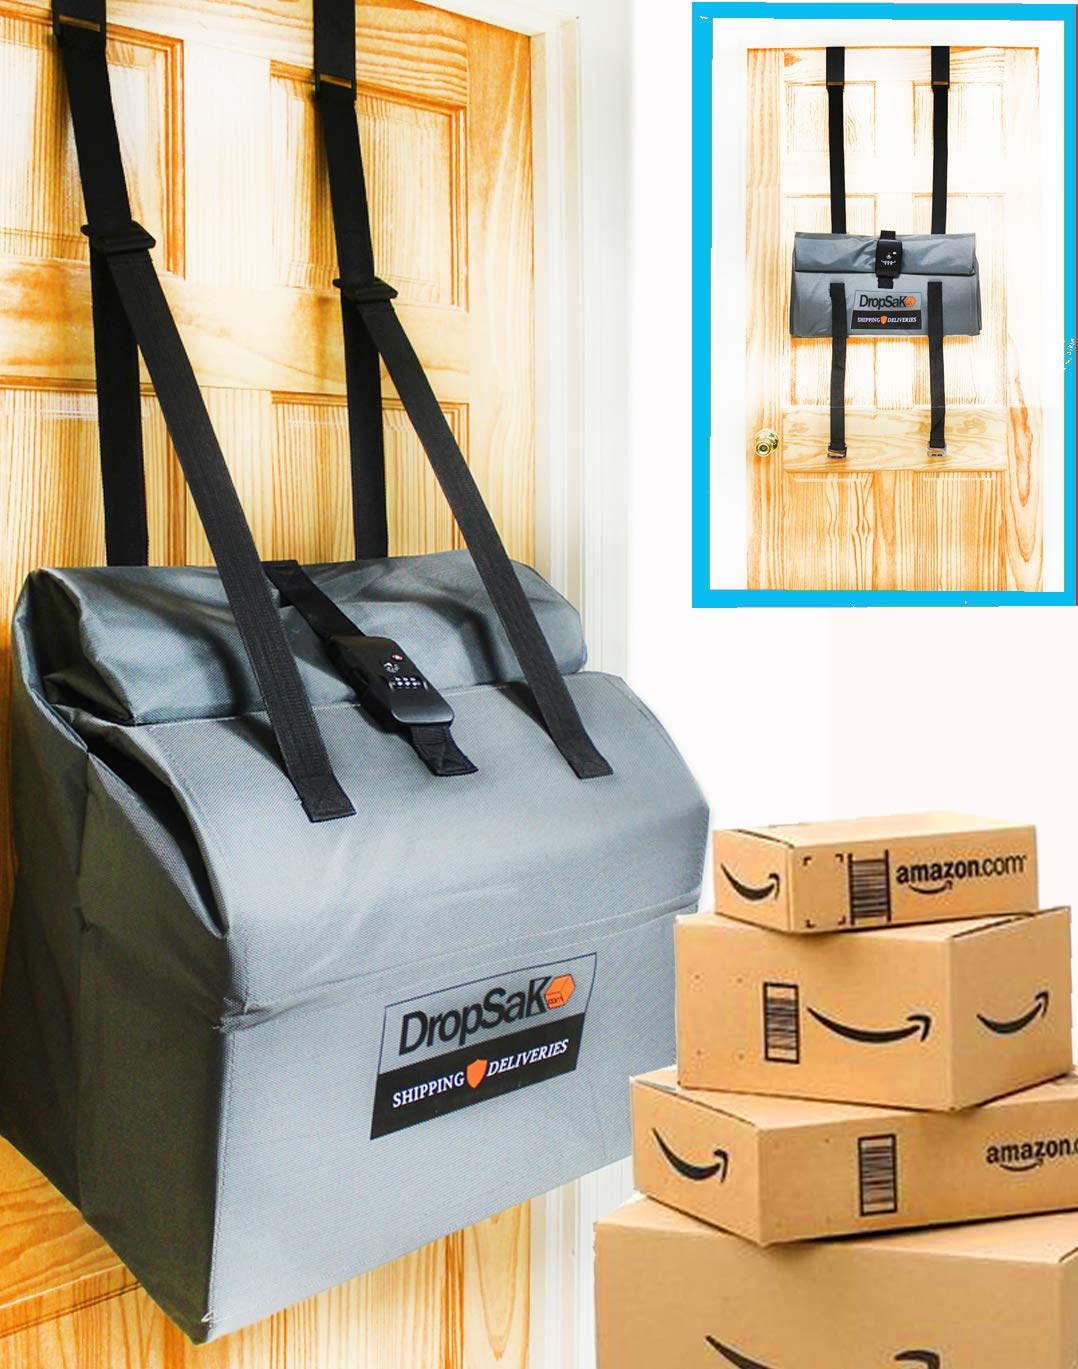 FIRST EVER! Secure Folding Package Theft Deterrent Drop Box/Mailbox with Lock by DROPSAK ULTRA. Works outside houses and inside apartment complexes too!